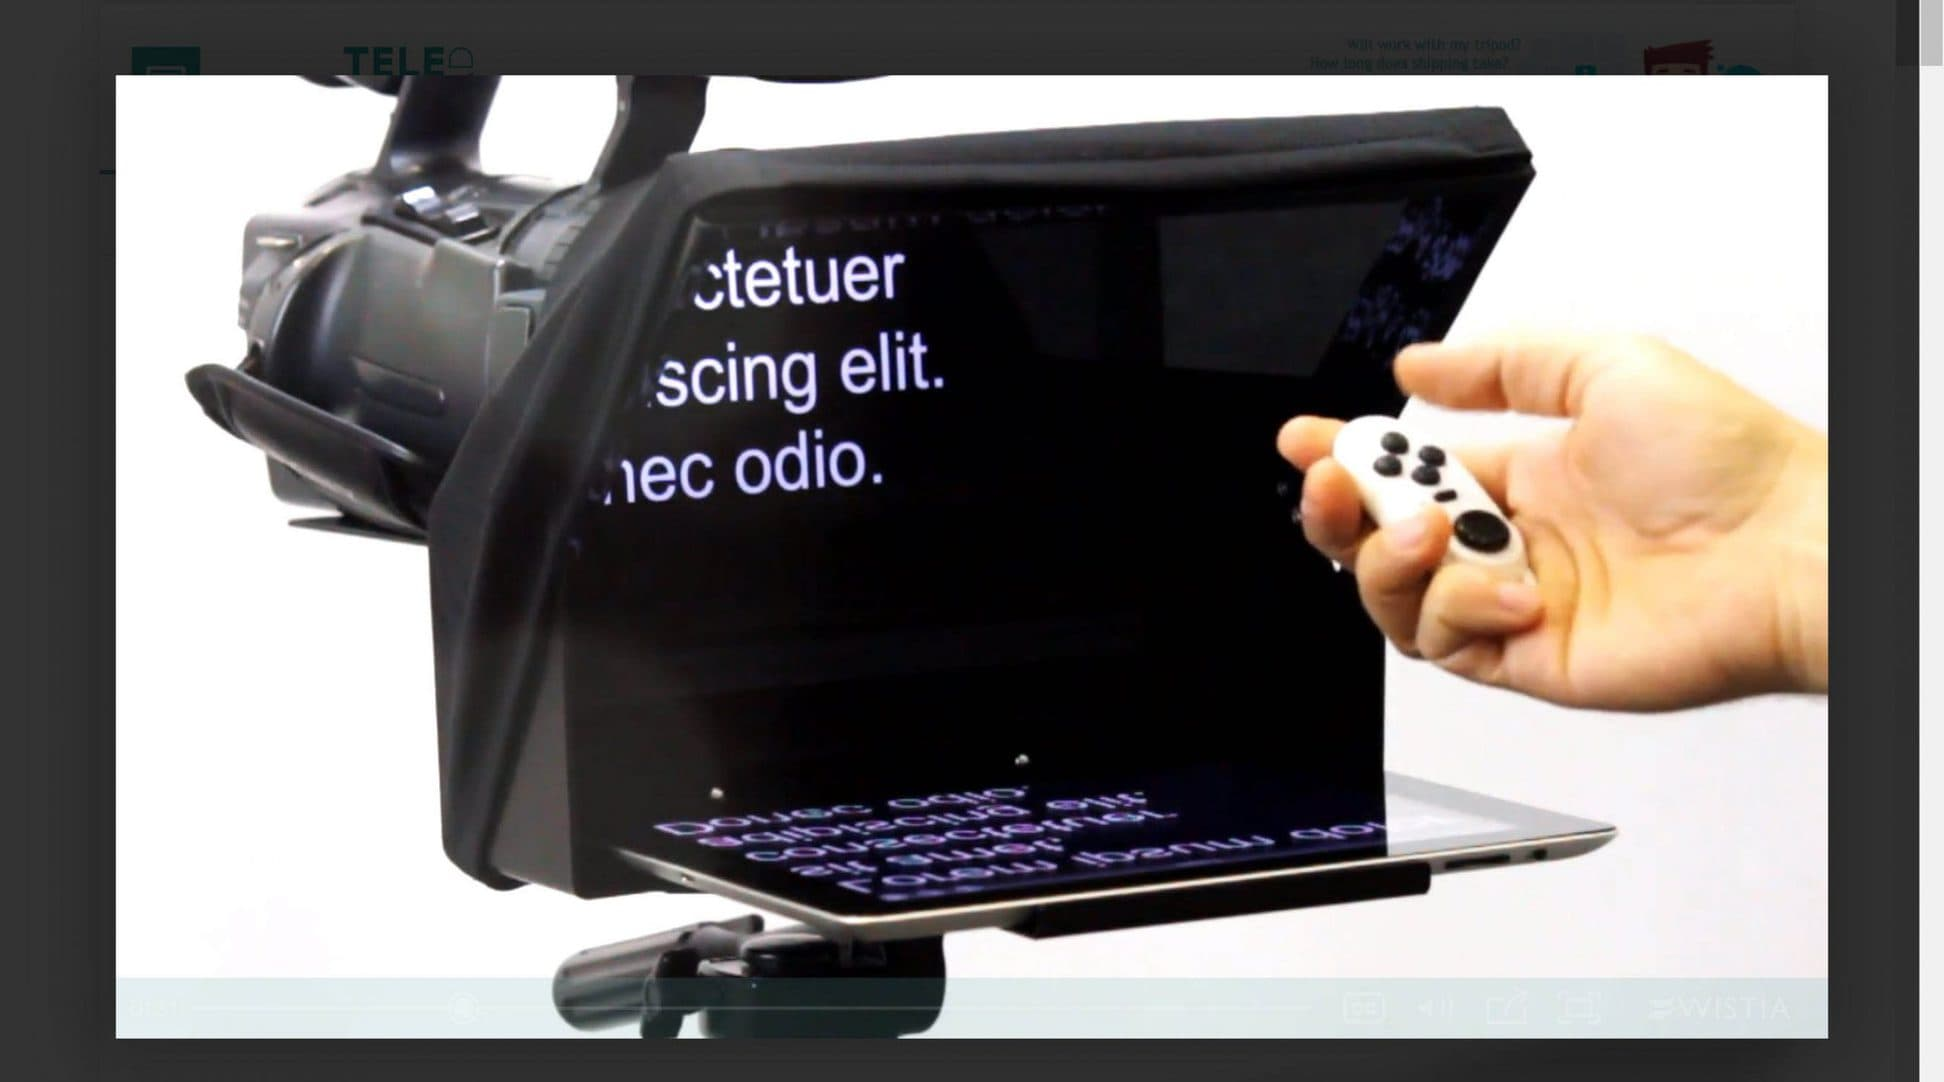 Portable Teleprompters TeleprompterPAD